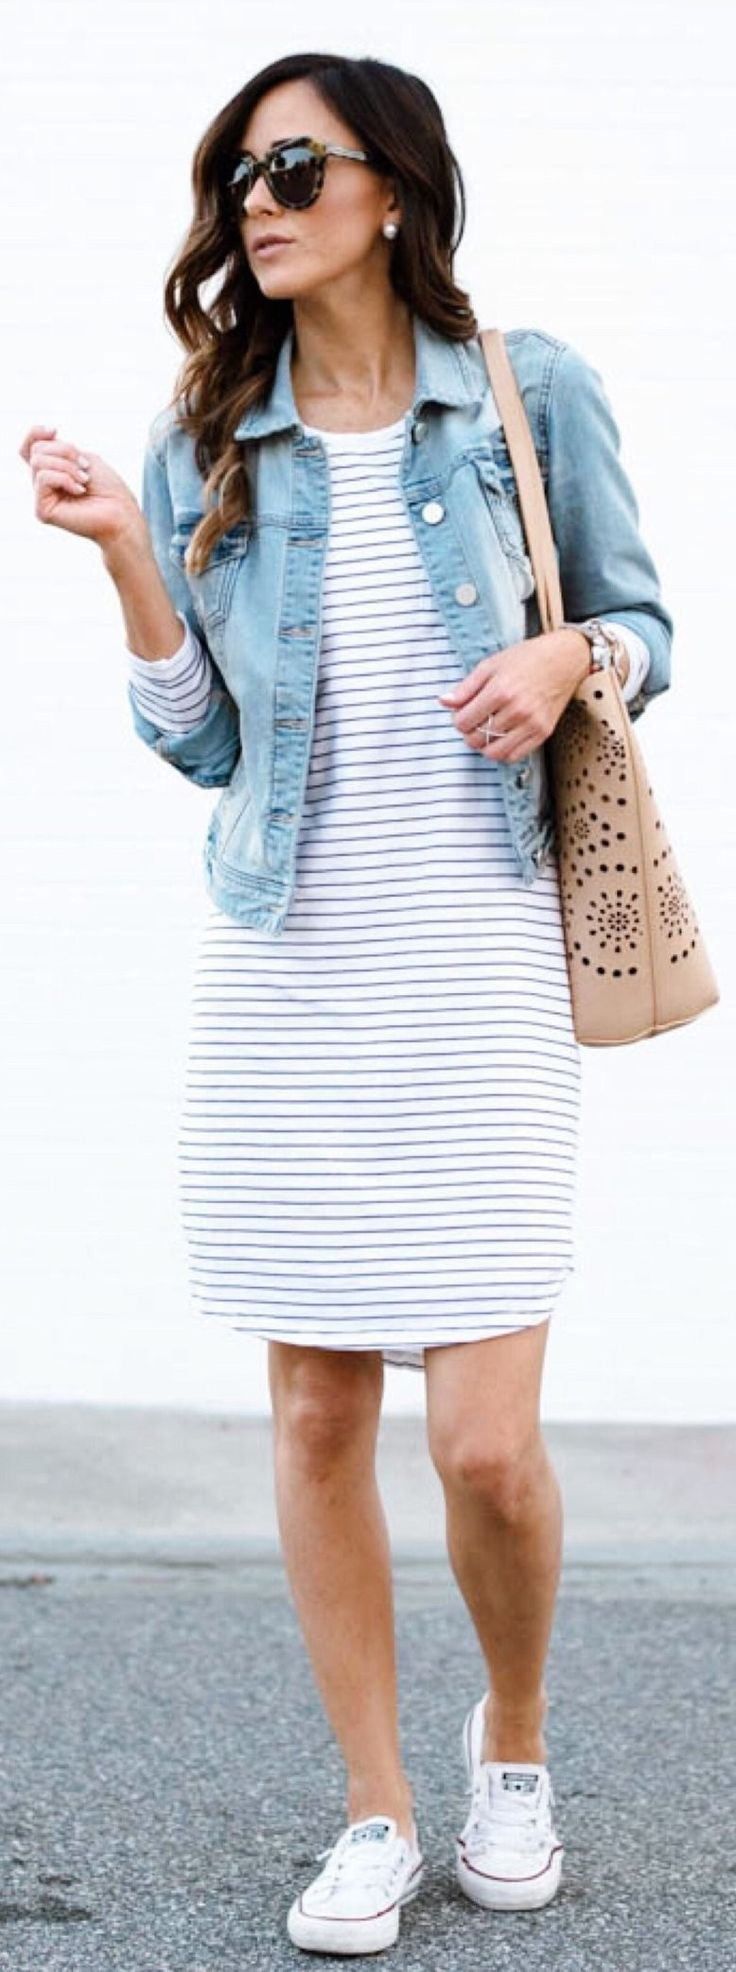 summer outfits Denim Jacket / White Striped Dress / White Sneakers